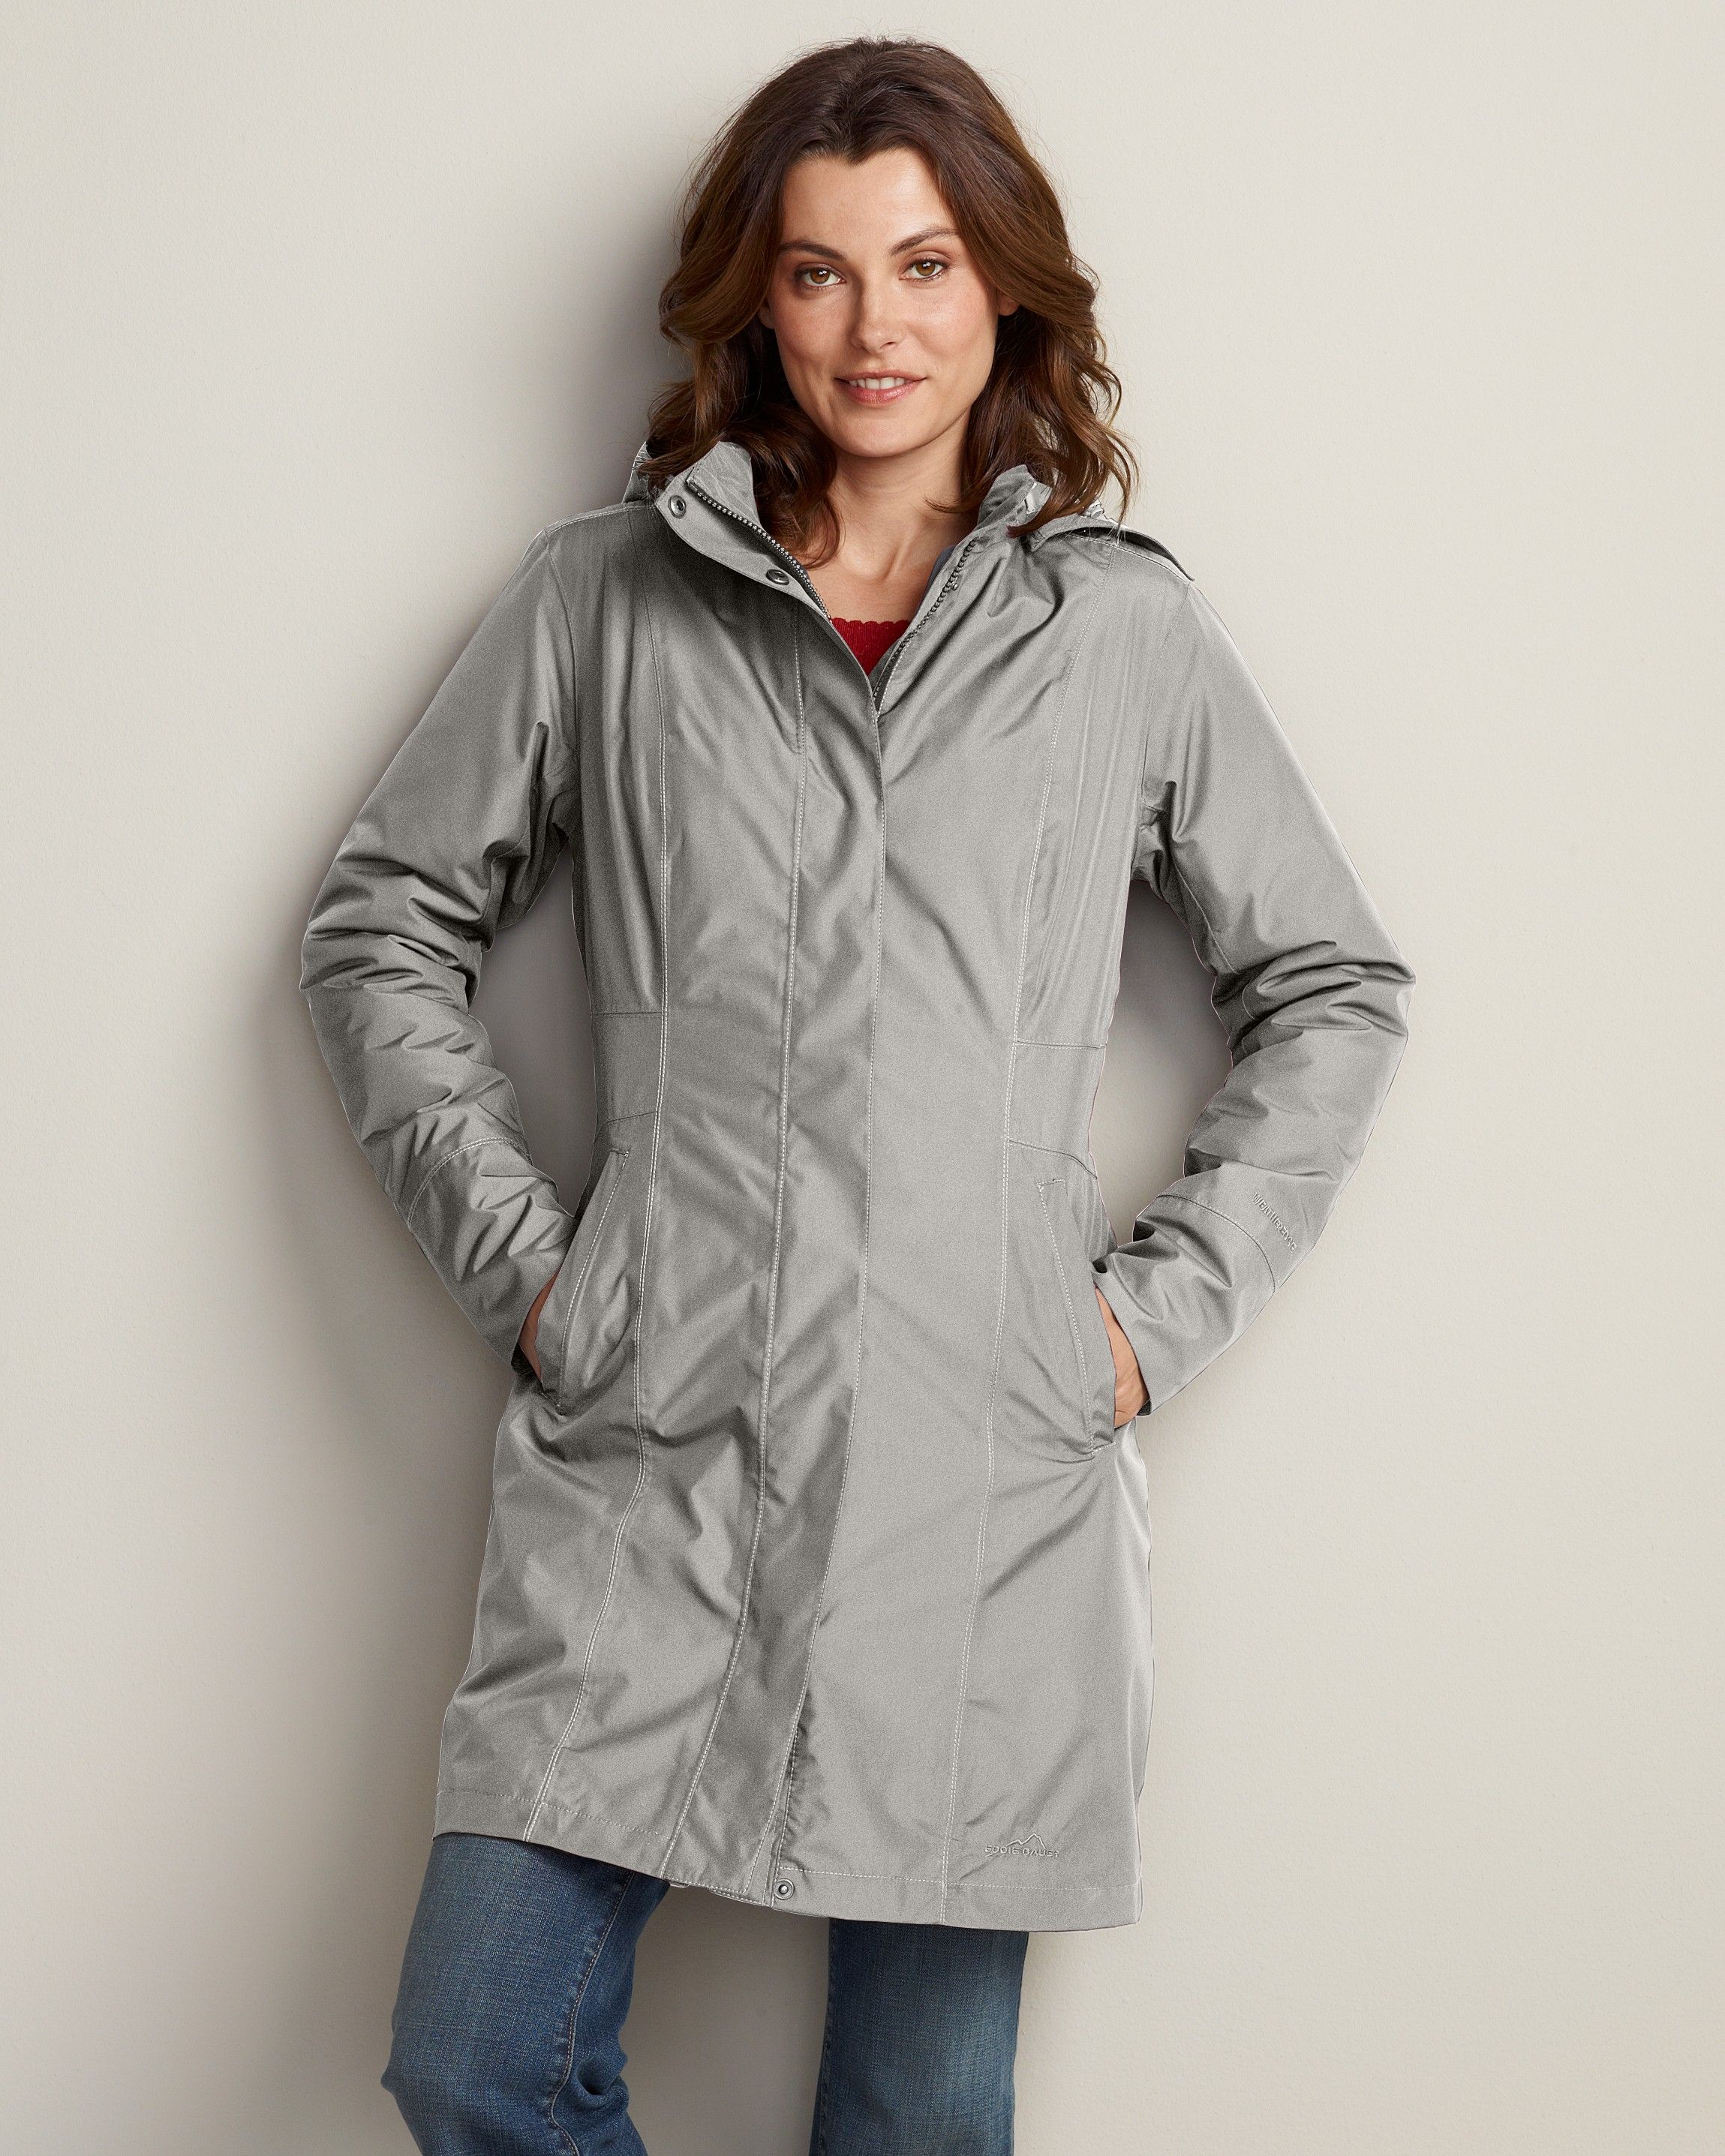 Eddie Bauer Womens Girl On The Go Insulated Trench Coat